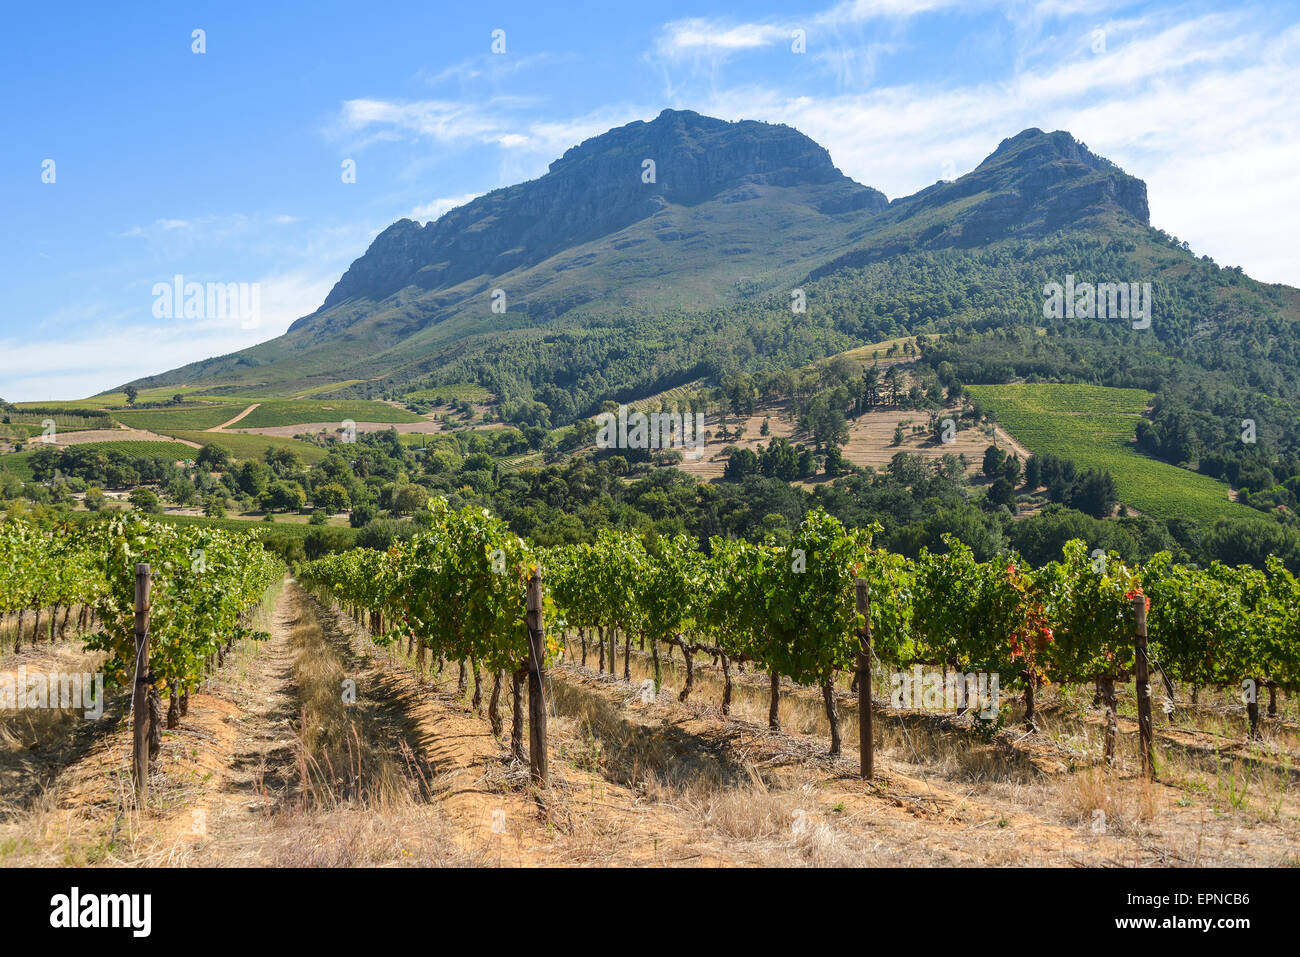 Vineyard in Stellenbosch, Cape Winelands District, Western Cape Province, Republic of South Africa - Stock Image